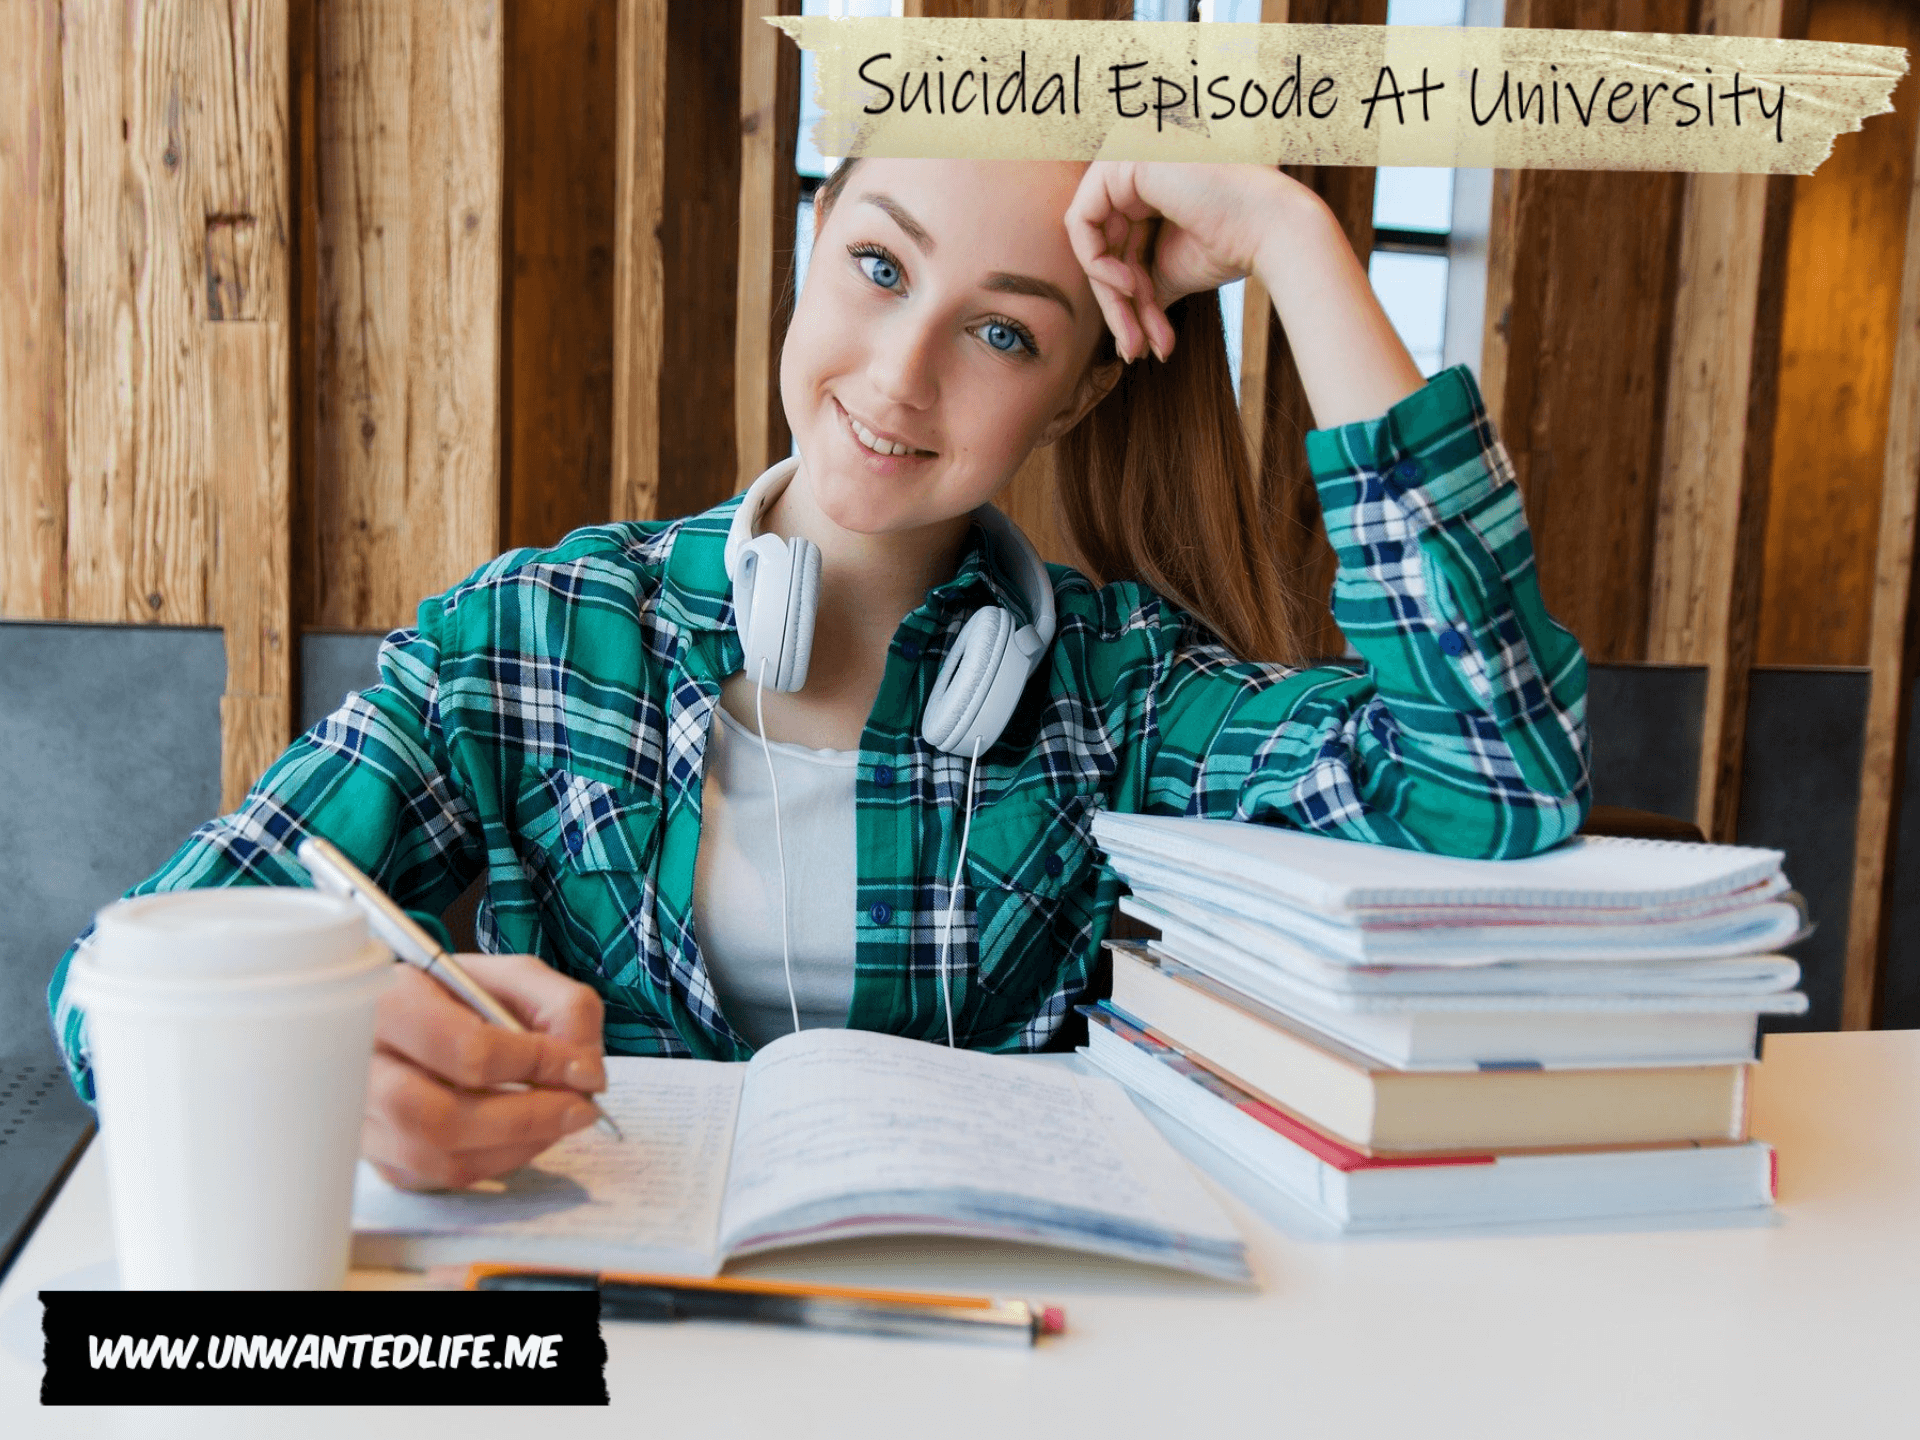 Suicidal Episode At University | Mental Health and Wellbeing